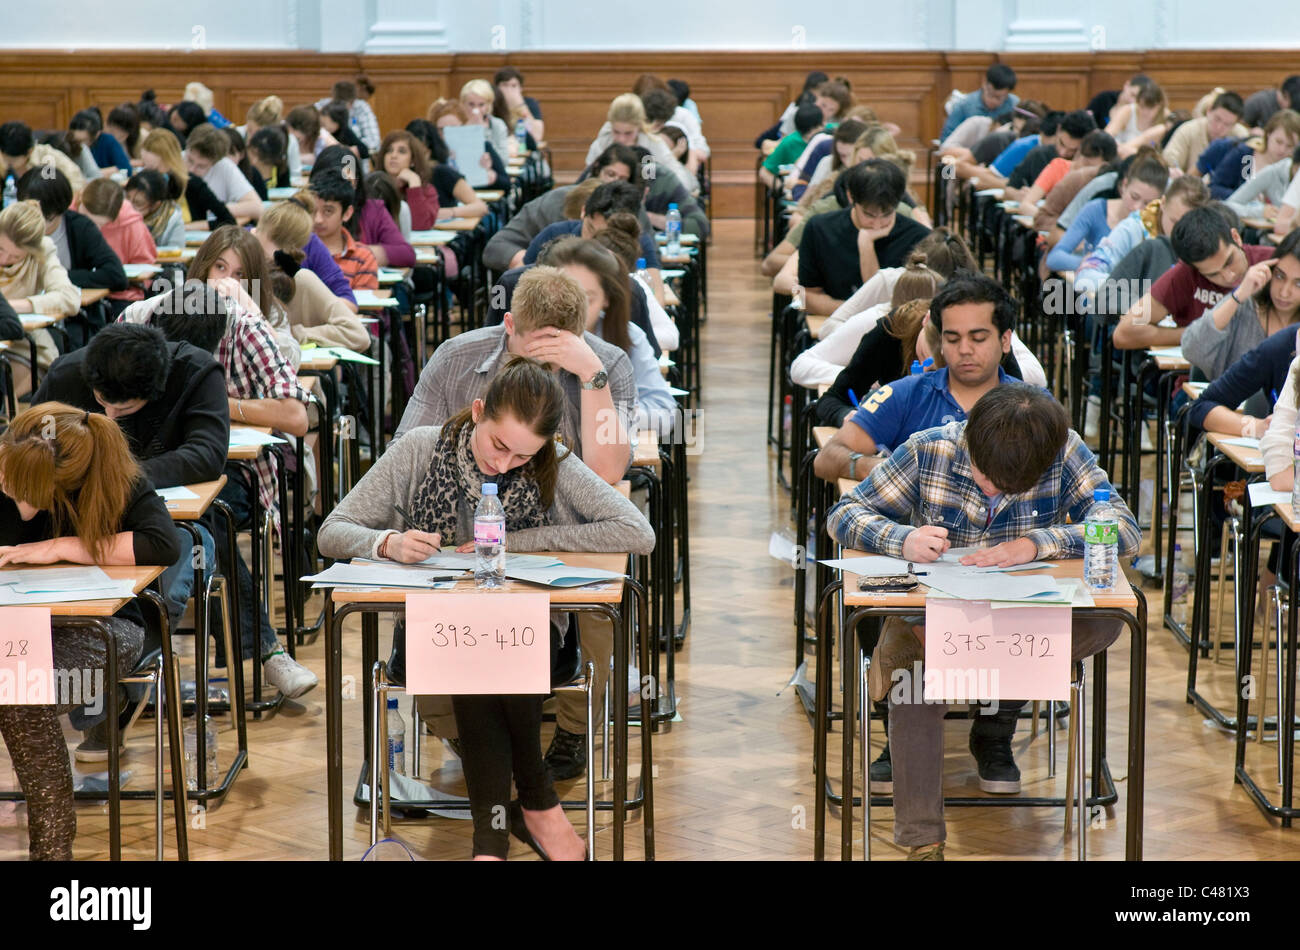 University students from King's College London, sitting exams. - Stock Image